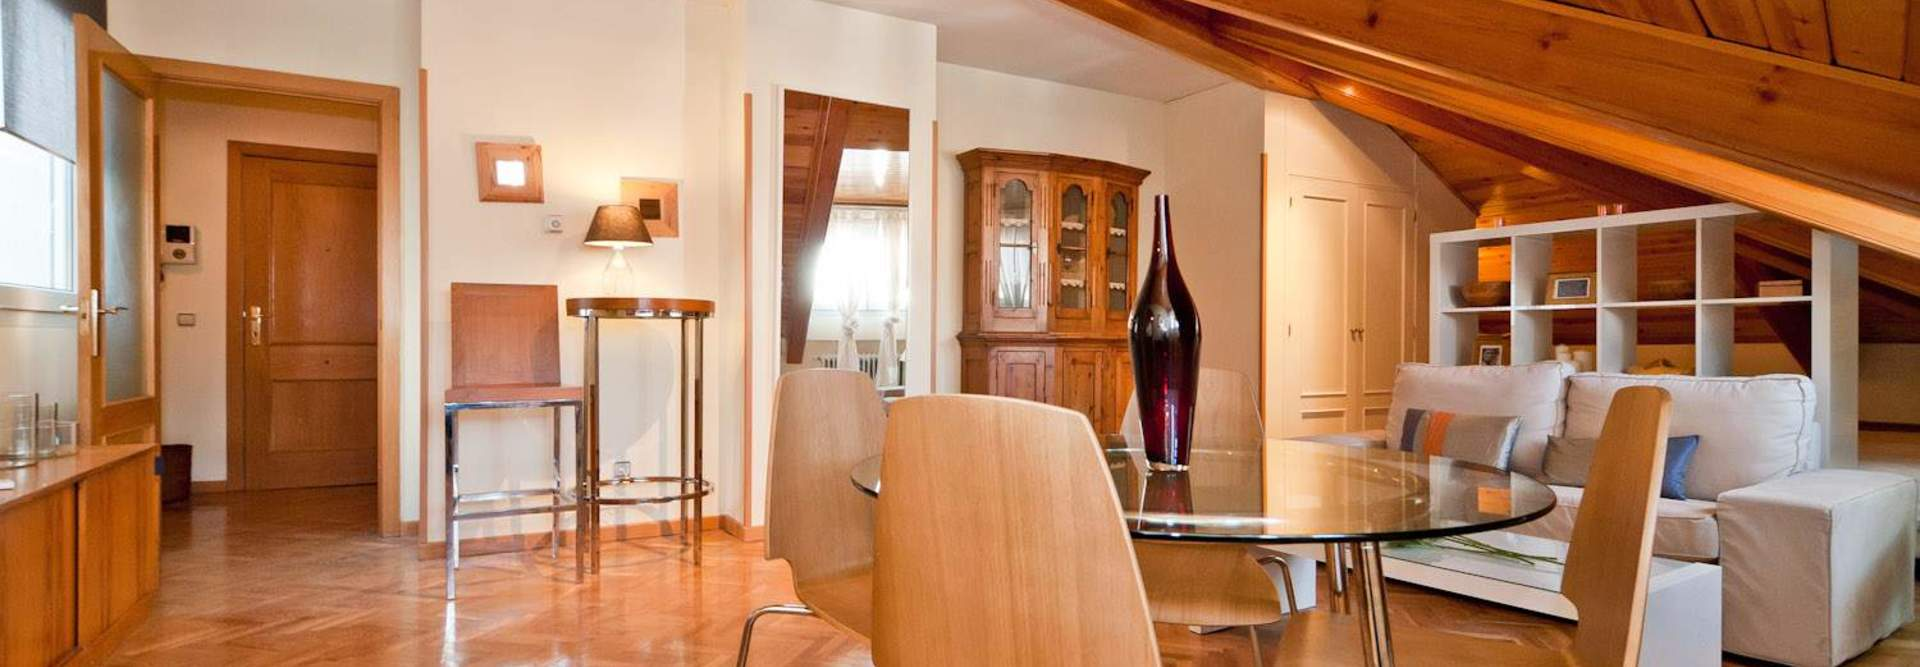 Home alquiler apartamento madrid centro mad4rent  9